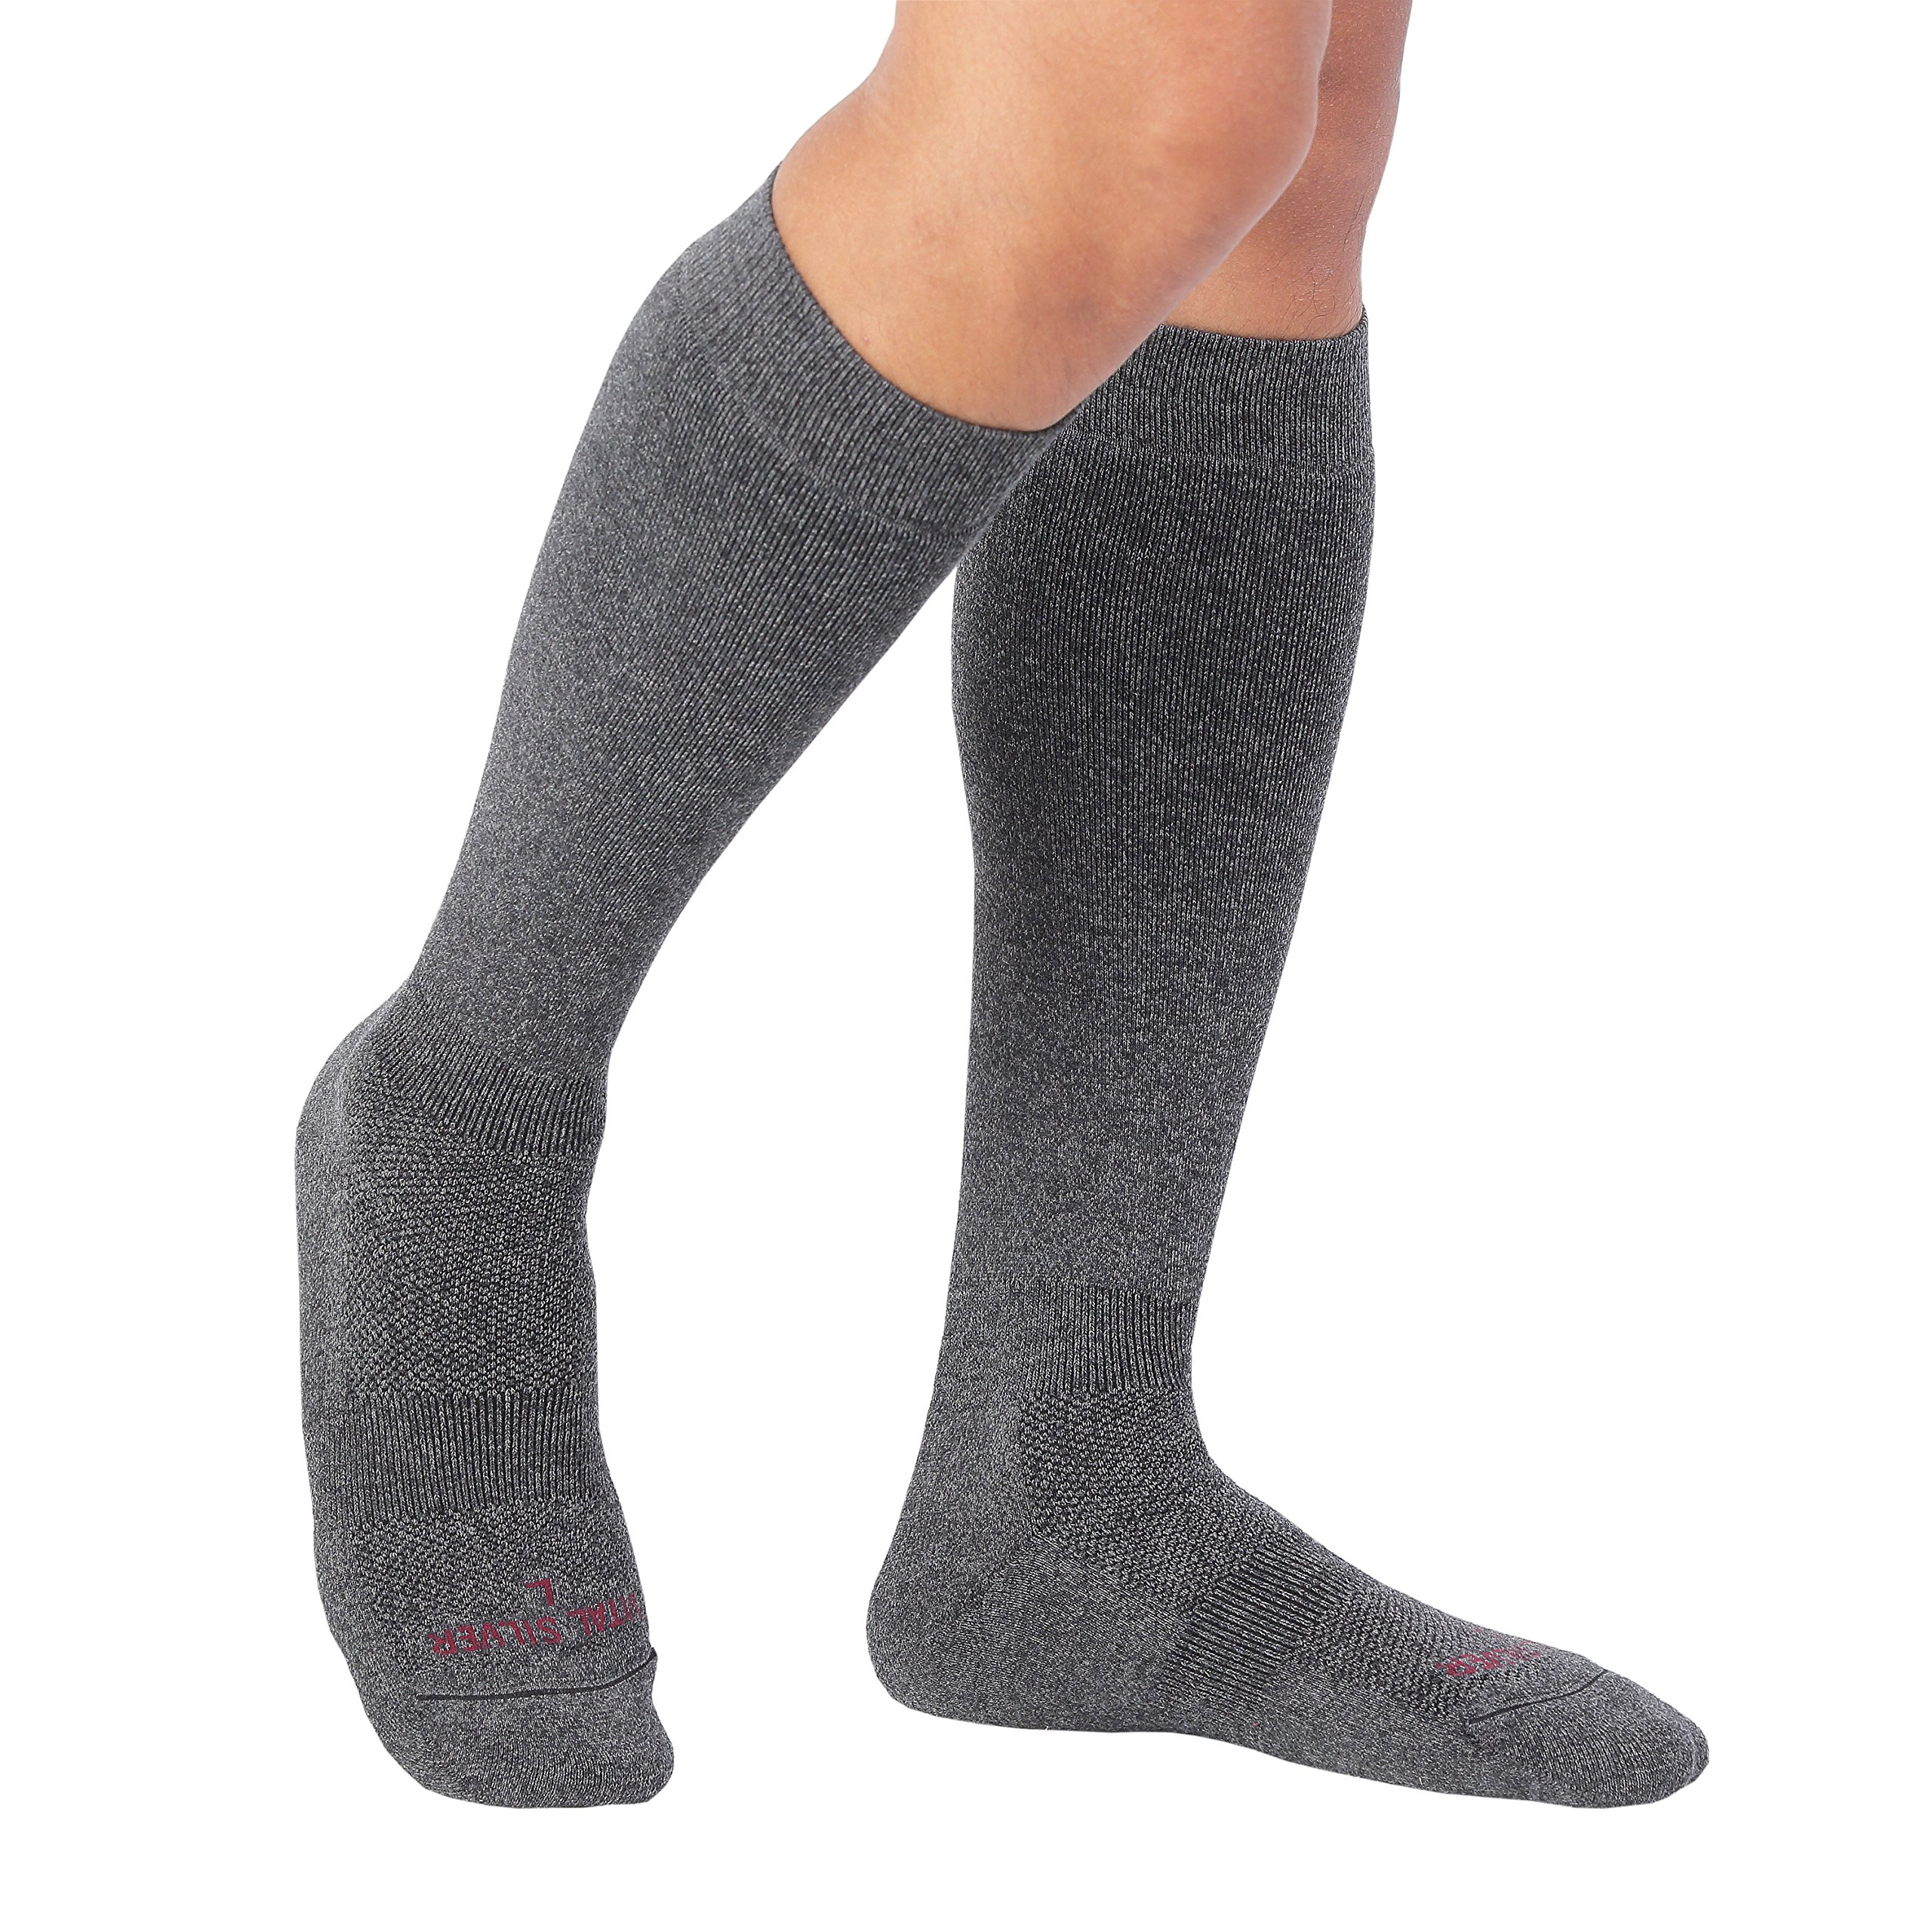 Vital Salveo- Merino Wool Hiking Knee Sock for Outdoor Enthusiasts, Bamboo Charcoal, Dark Gray- X-Large by Vital Silver